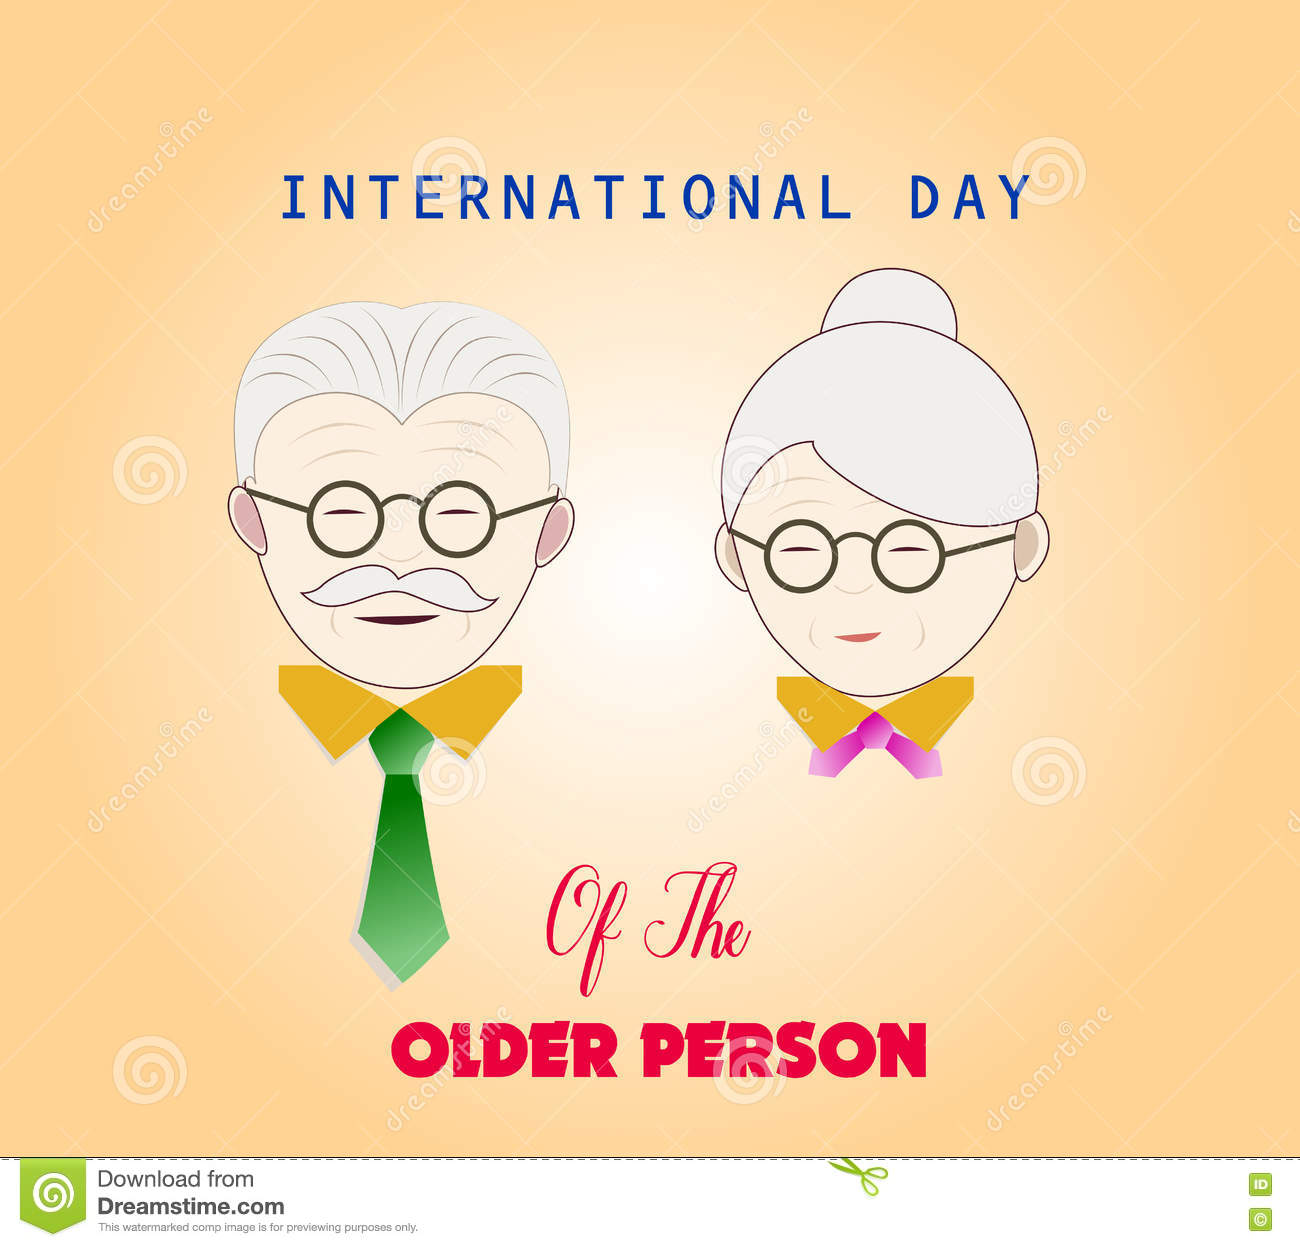 Image of: Babies International Day Of The Older Person Couple Of Older People Dreamstimecom International Day Of The Older Person Couple Of Older People Stock